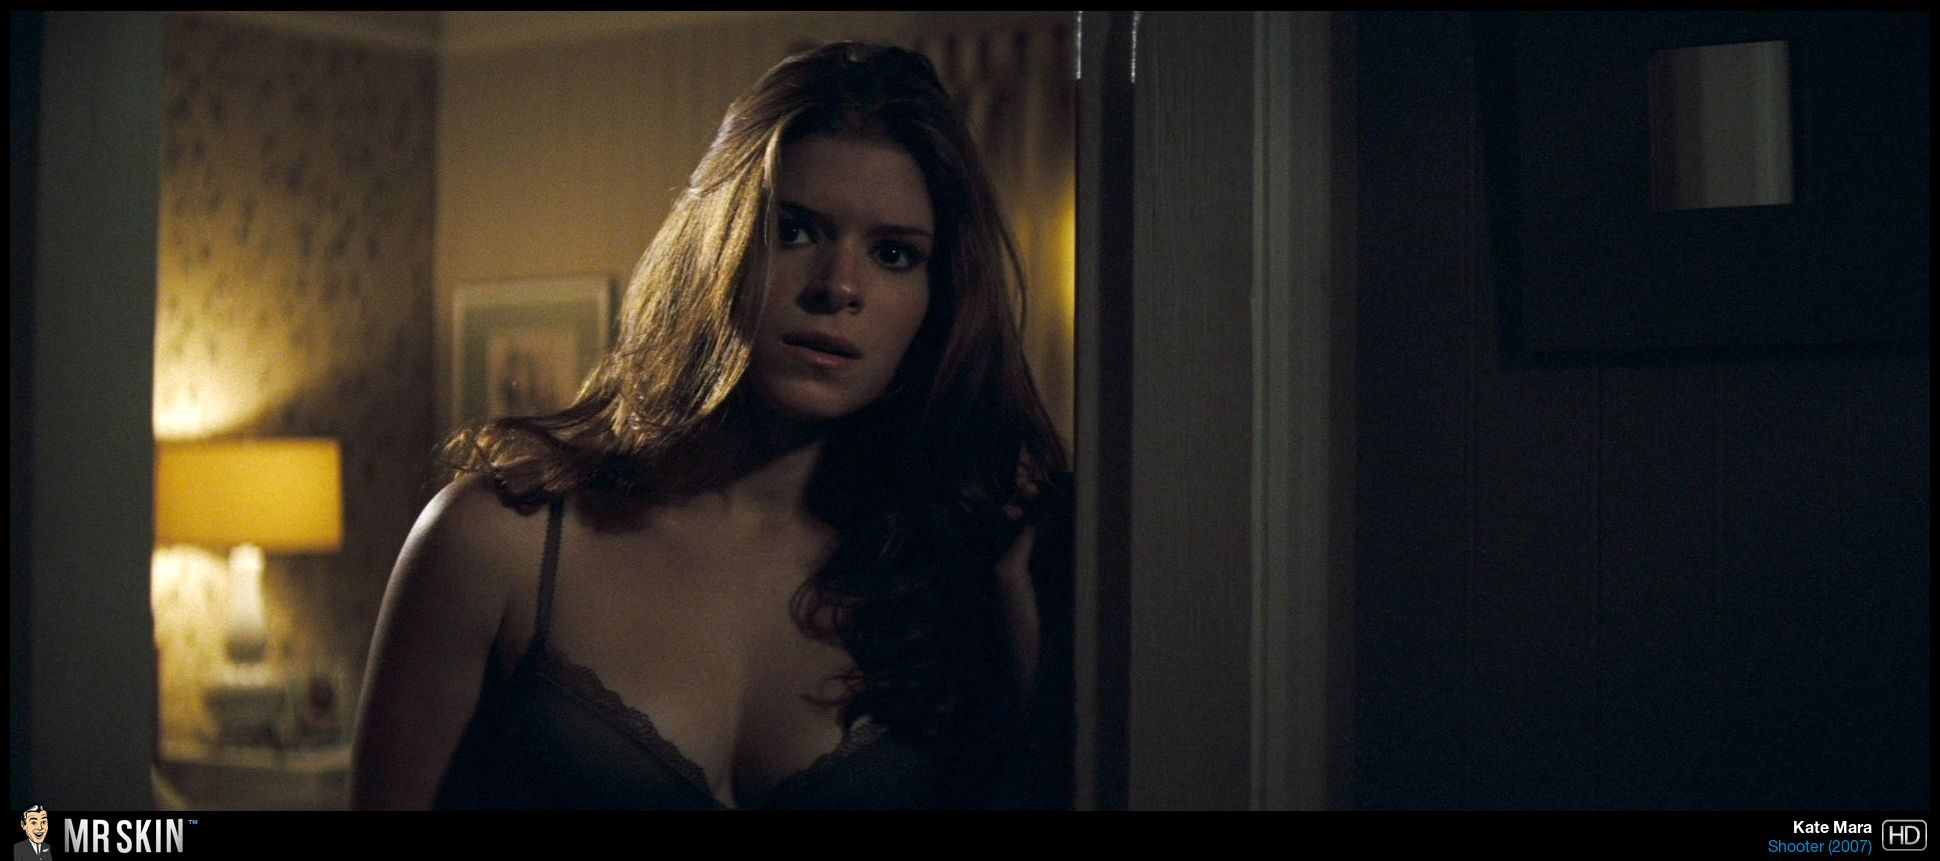 Kate Mara Nua Em Shooter Ancensored